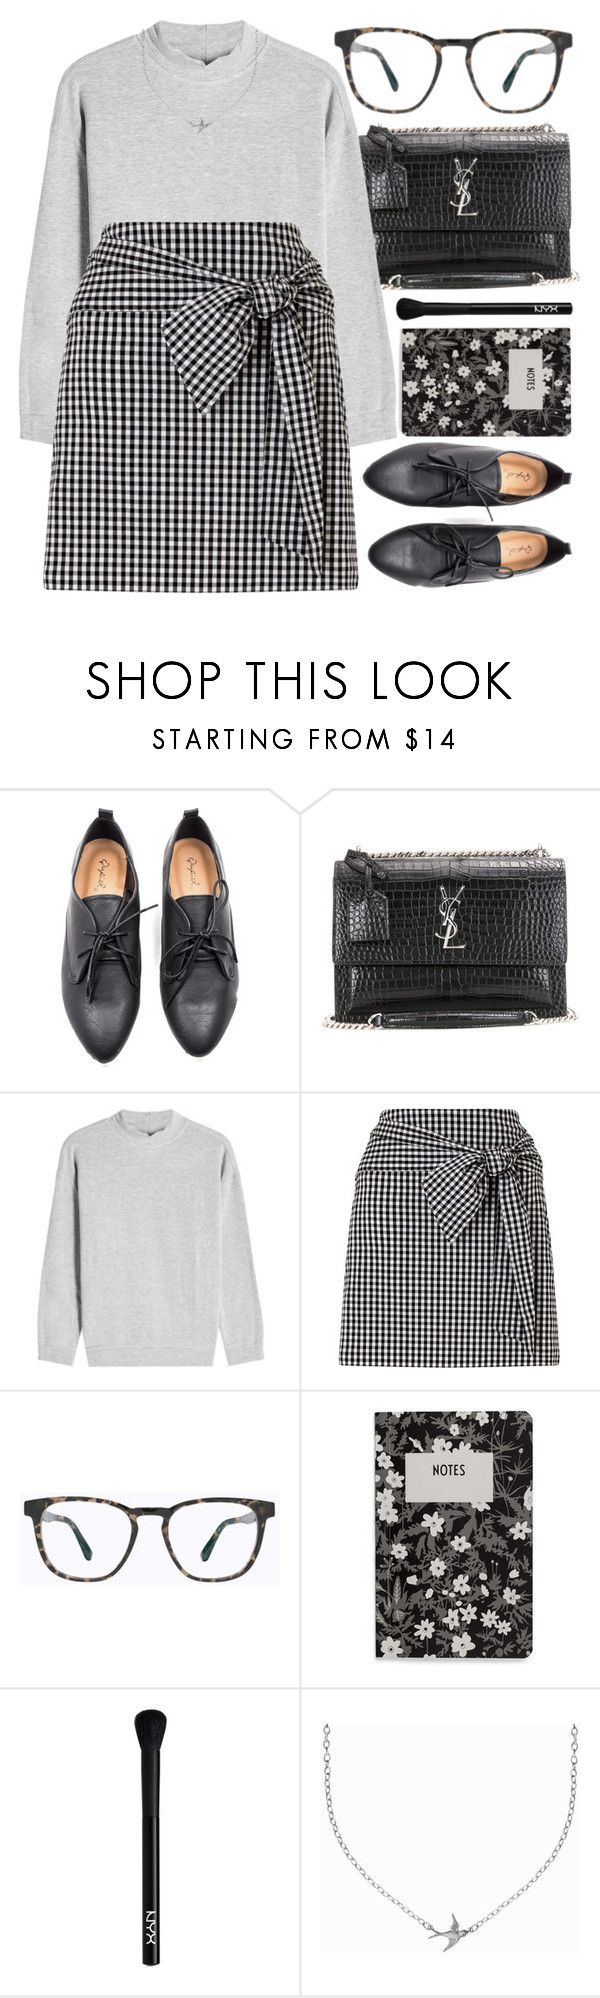 """Lucky Charm"" by smartbuyglasses ❤ liked on Polyvore featuring Oxford, Yves Saint Laurent, Velvet, Miss Selfridge, Mykita, Design Letters, NYX, Minnie Grace, black and gray"